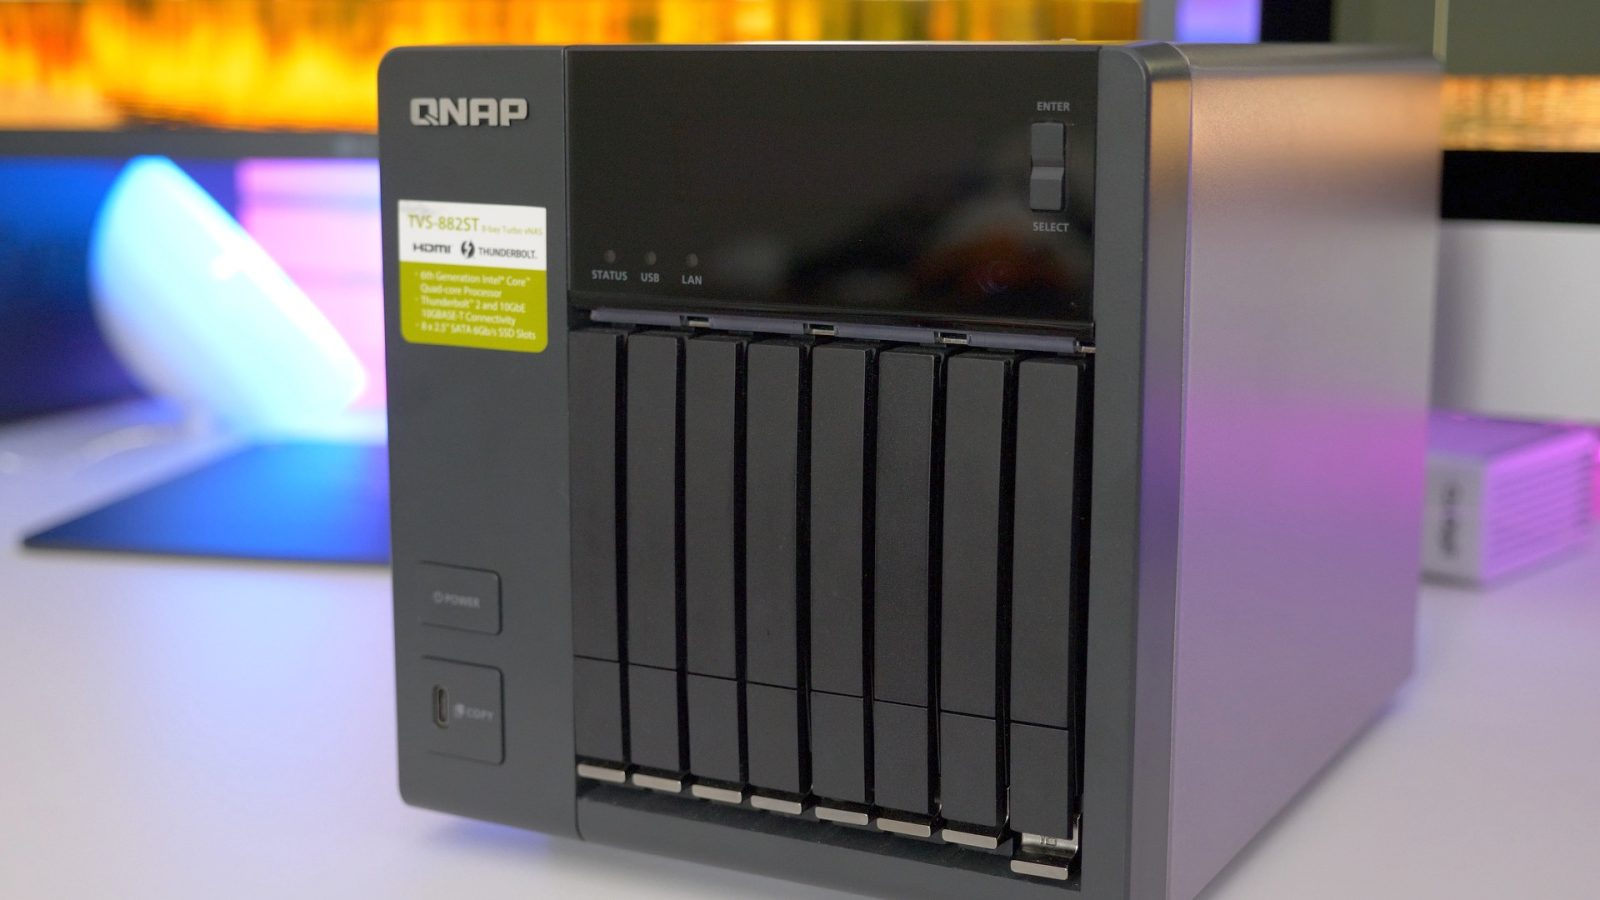 Hands-on: QNAP's TVS-882ST3 is a compact NAS with tons of power-user